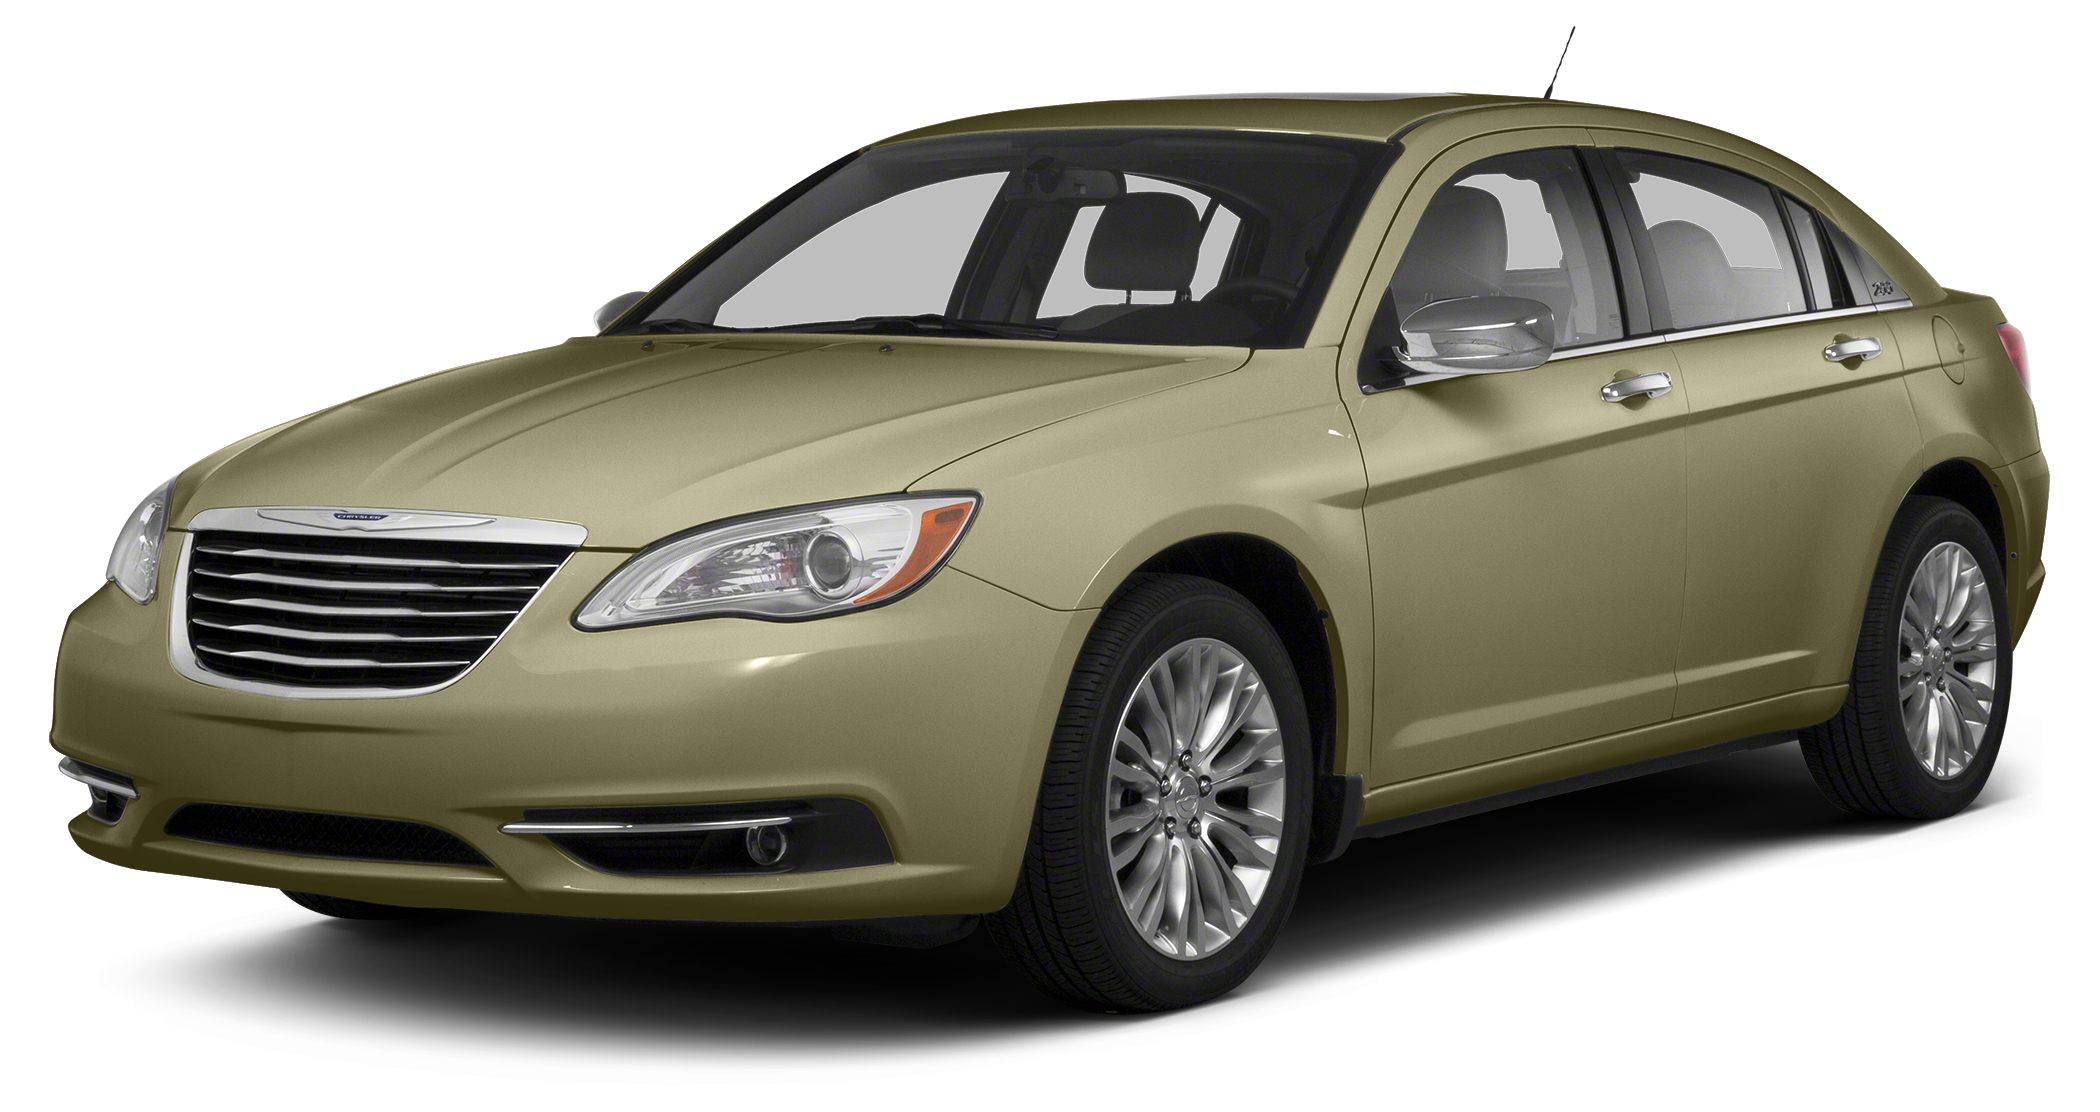 2013 Chrysler 200 Limited 200 Limited 4D Sedan 36L V6 24V VVT 6-Speed Automatic FWD and Beig